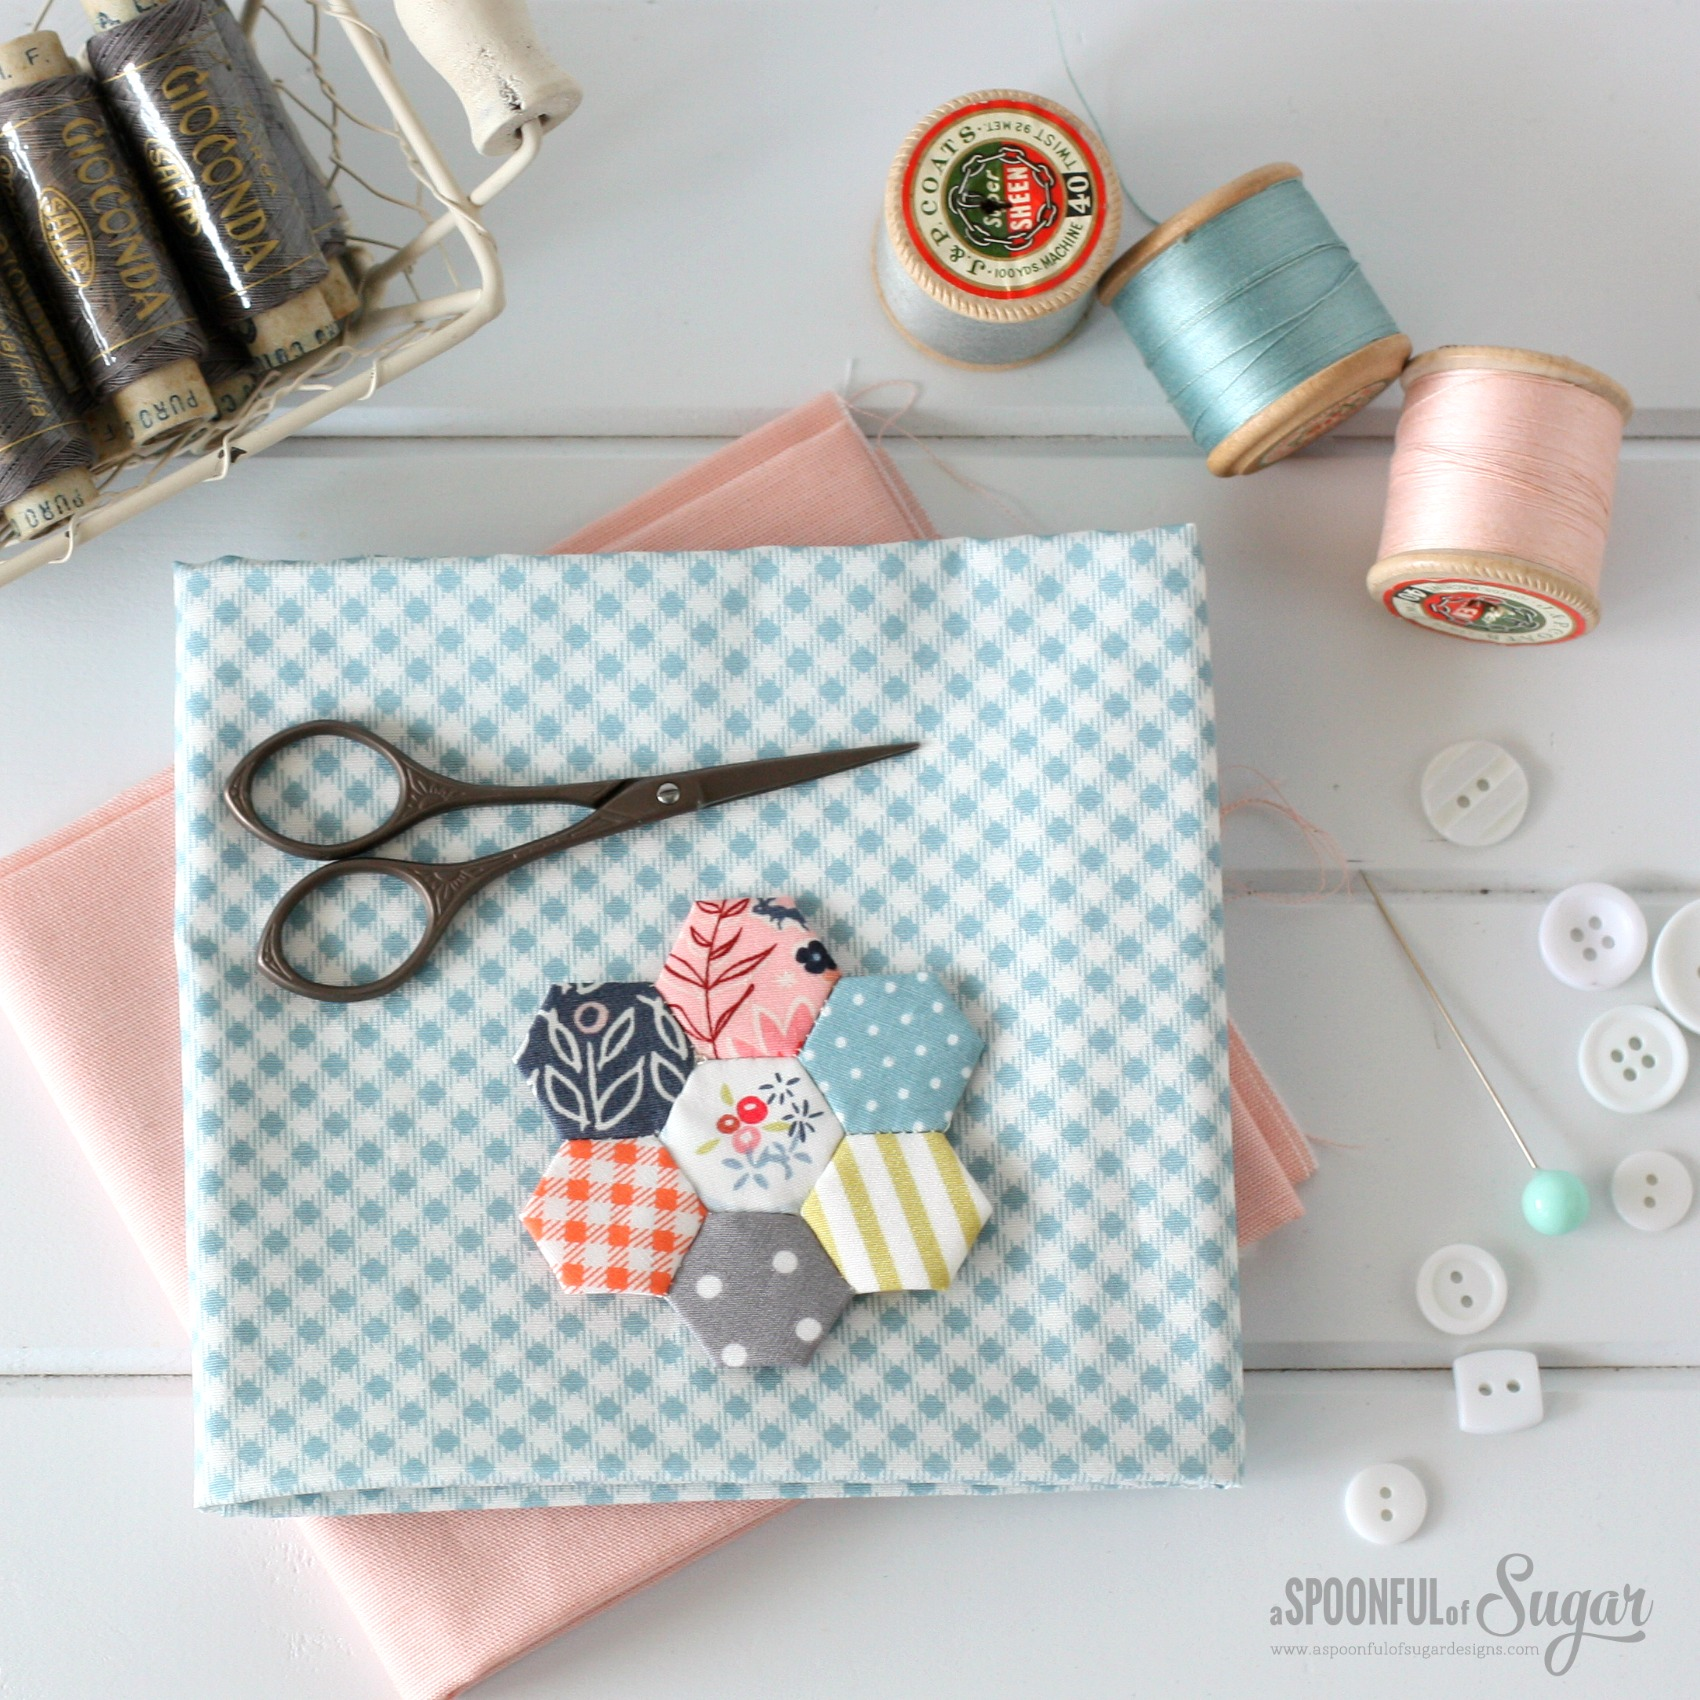 How to Sew a Card Holder - A Spoonful of Sugar